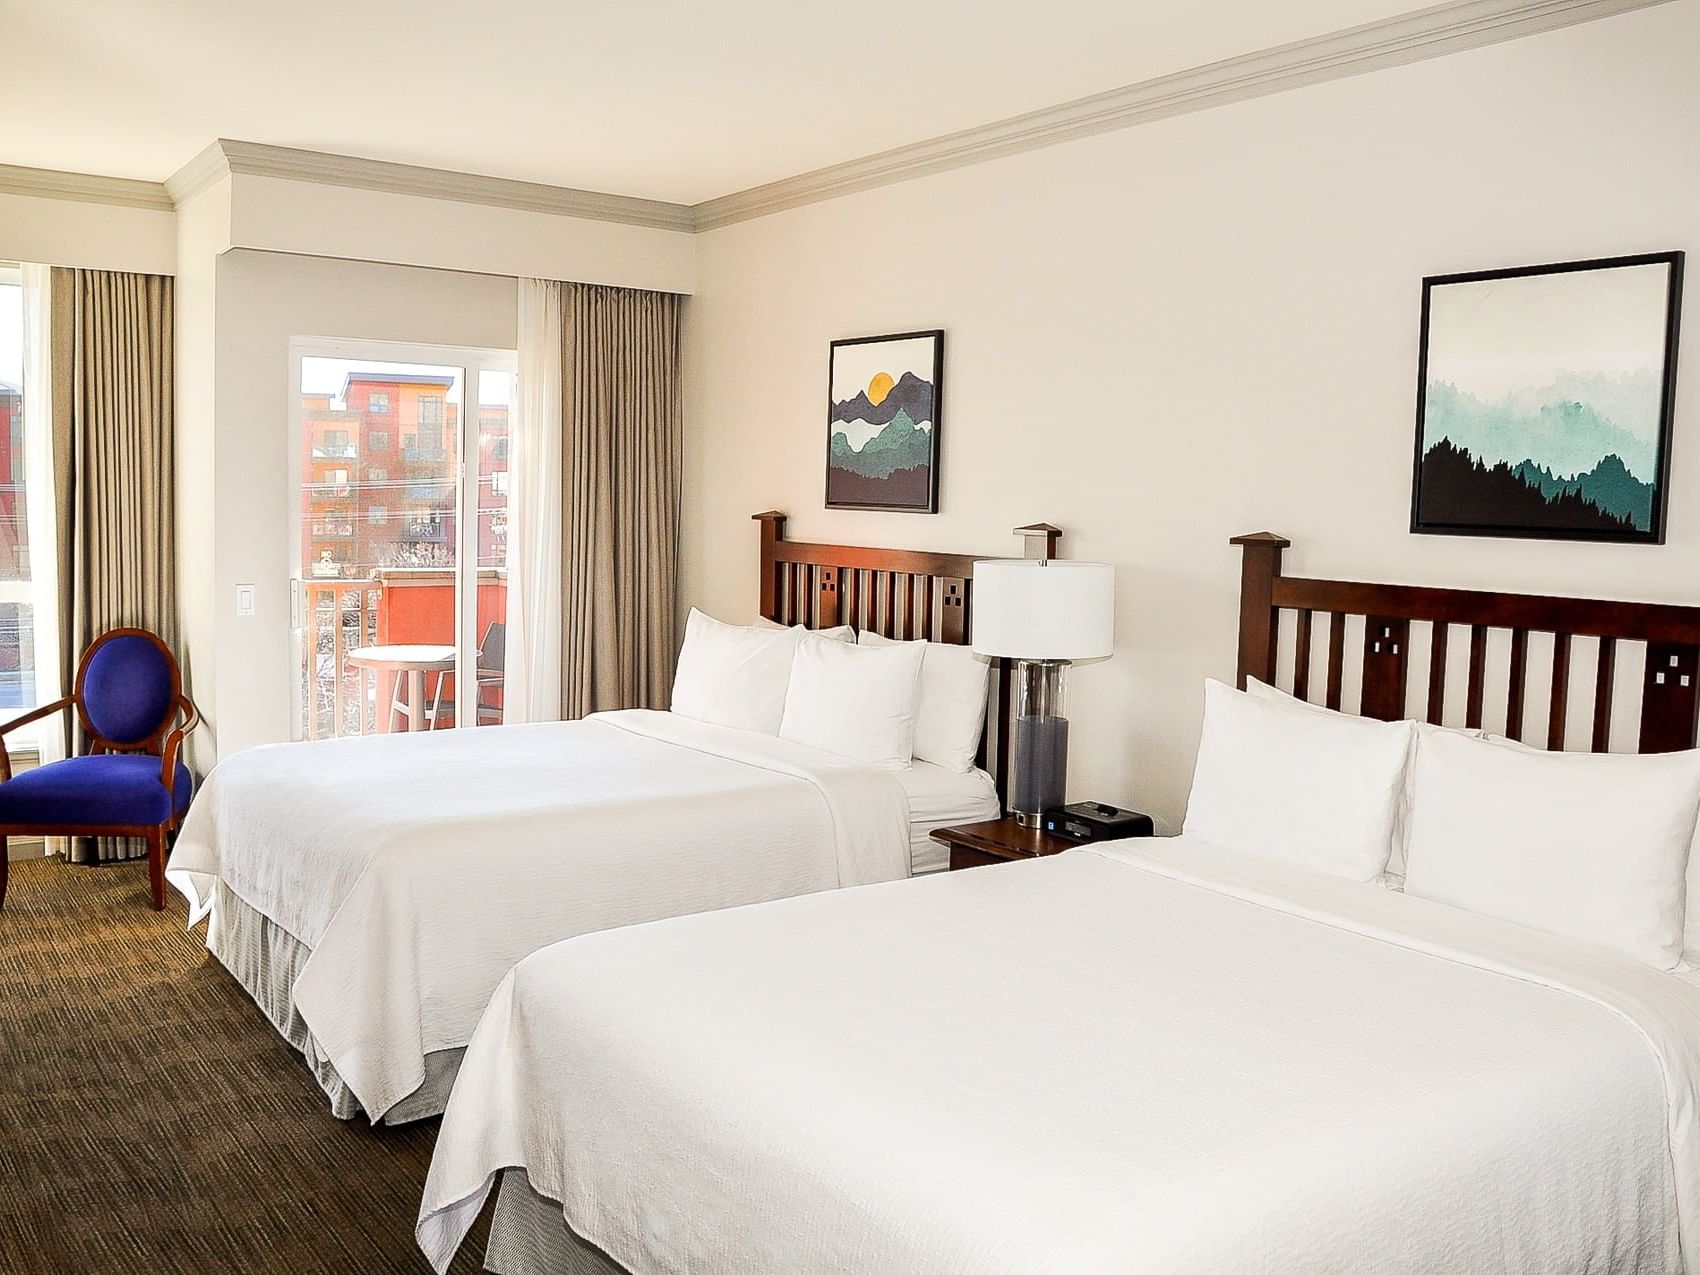 Deluxe Guest Room with two beds at Manteo Resort